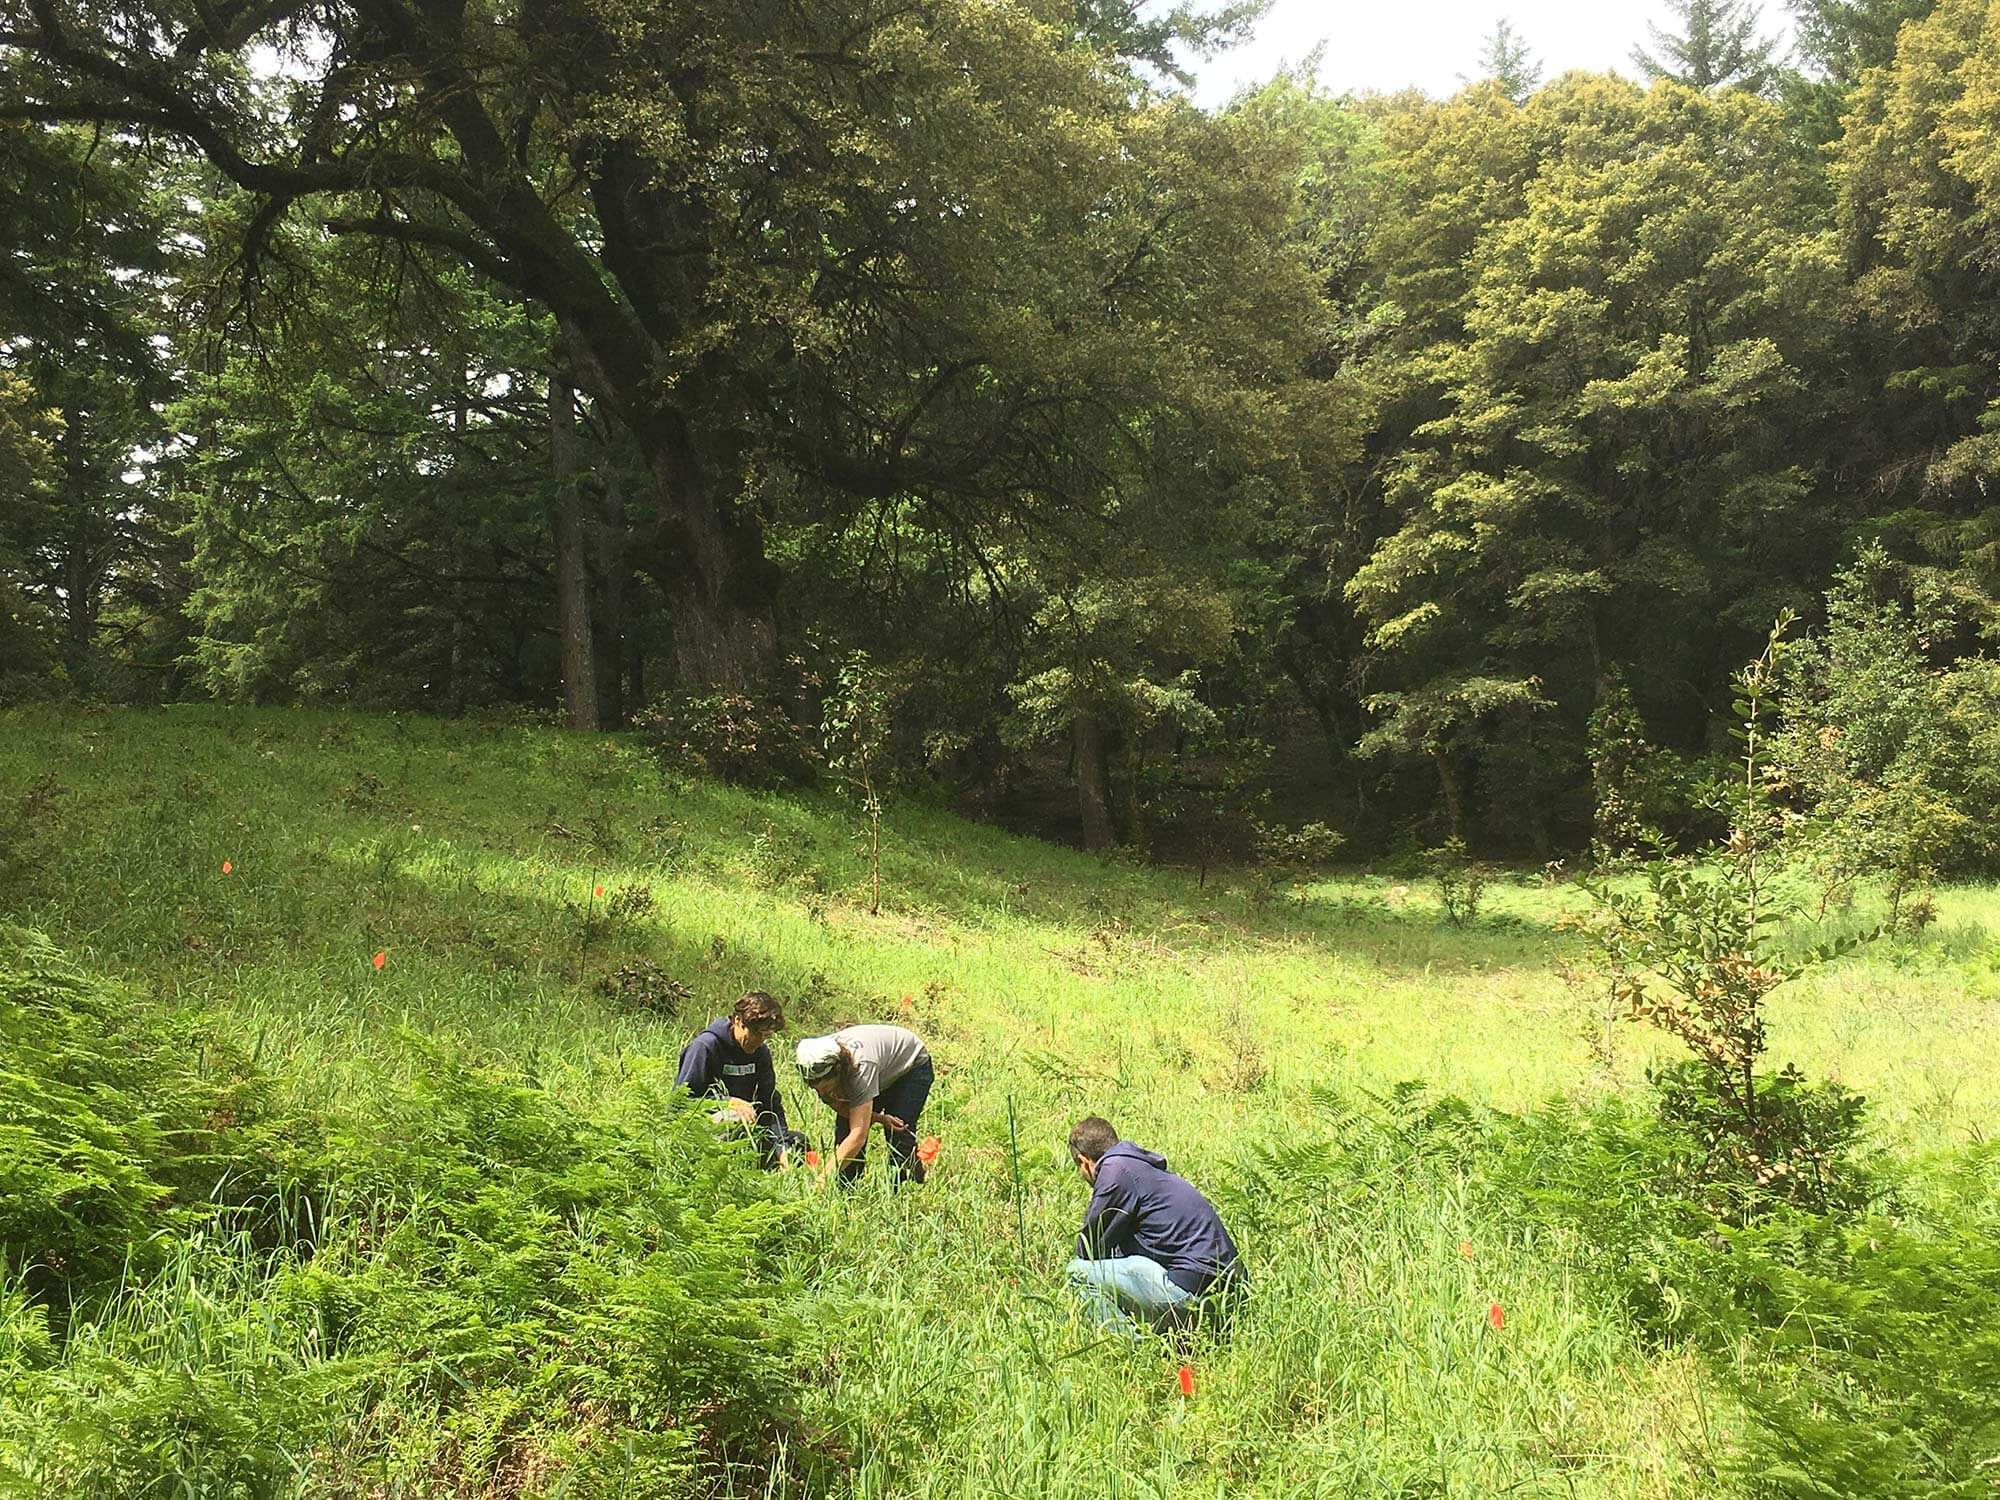 Establishing research plots at Sempervirens Fund's Whalen property